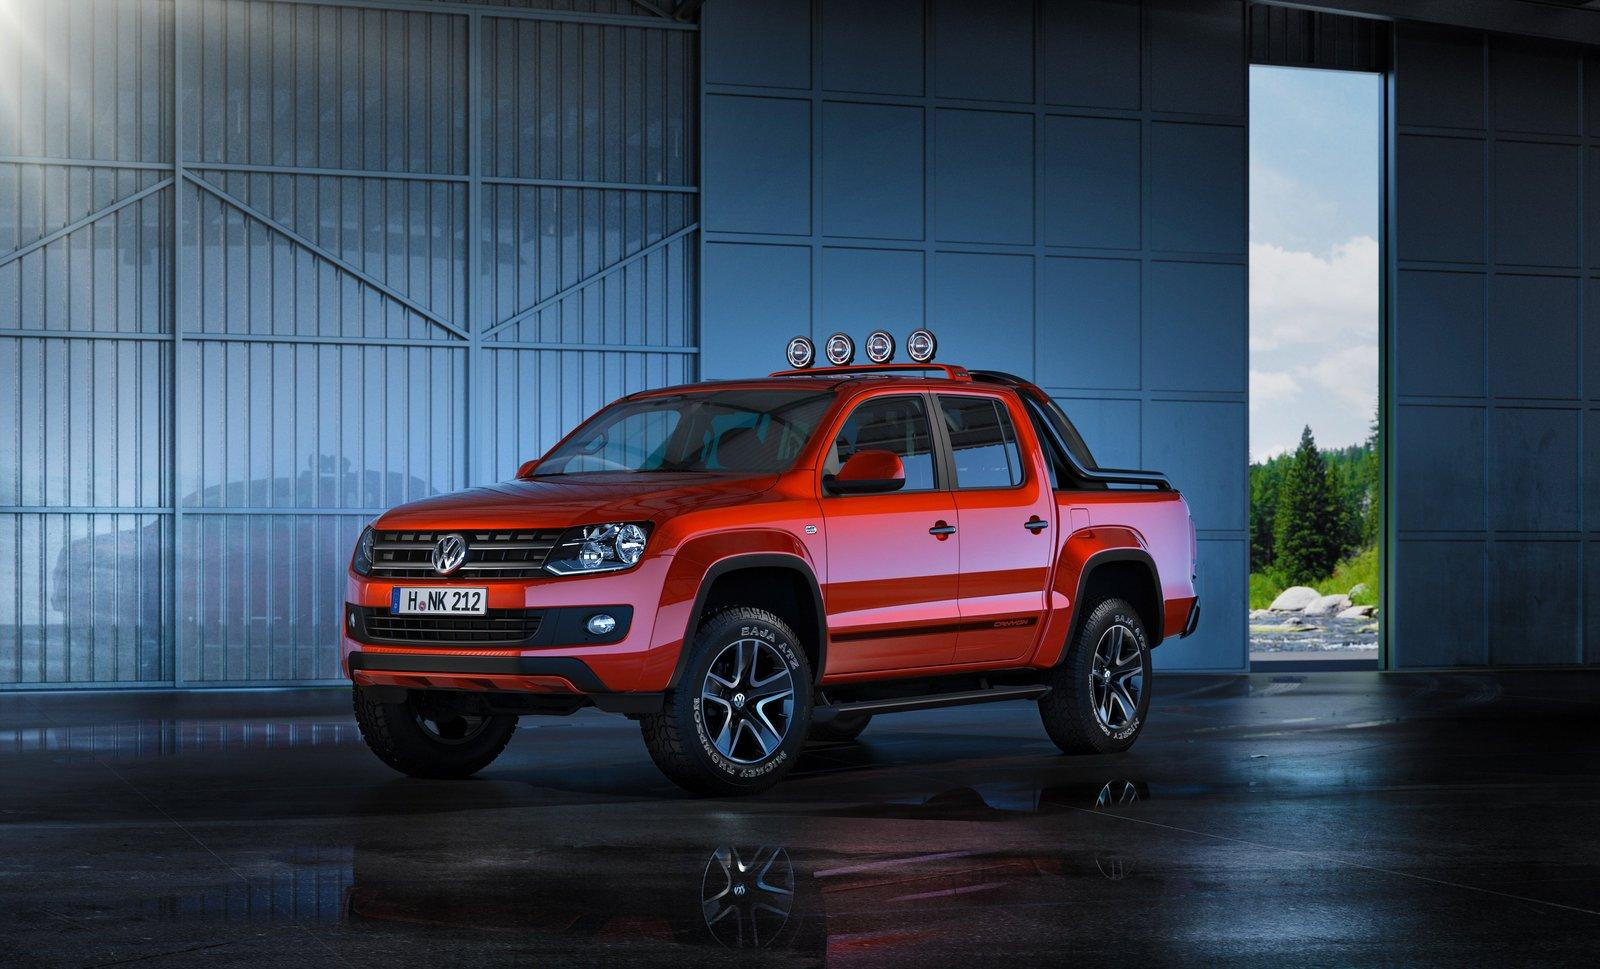 2012 volkswagen amarok canyon concept debuts in geneva. Black Bedroom Furniture Sets. Home Design Ideas